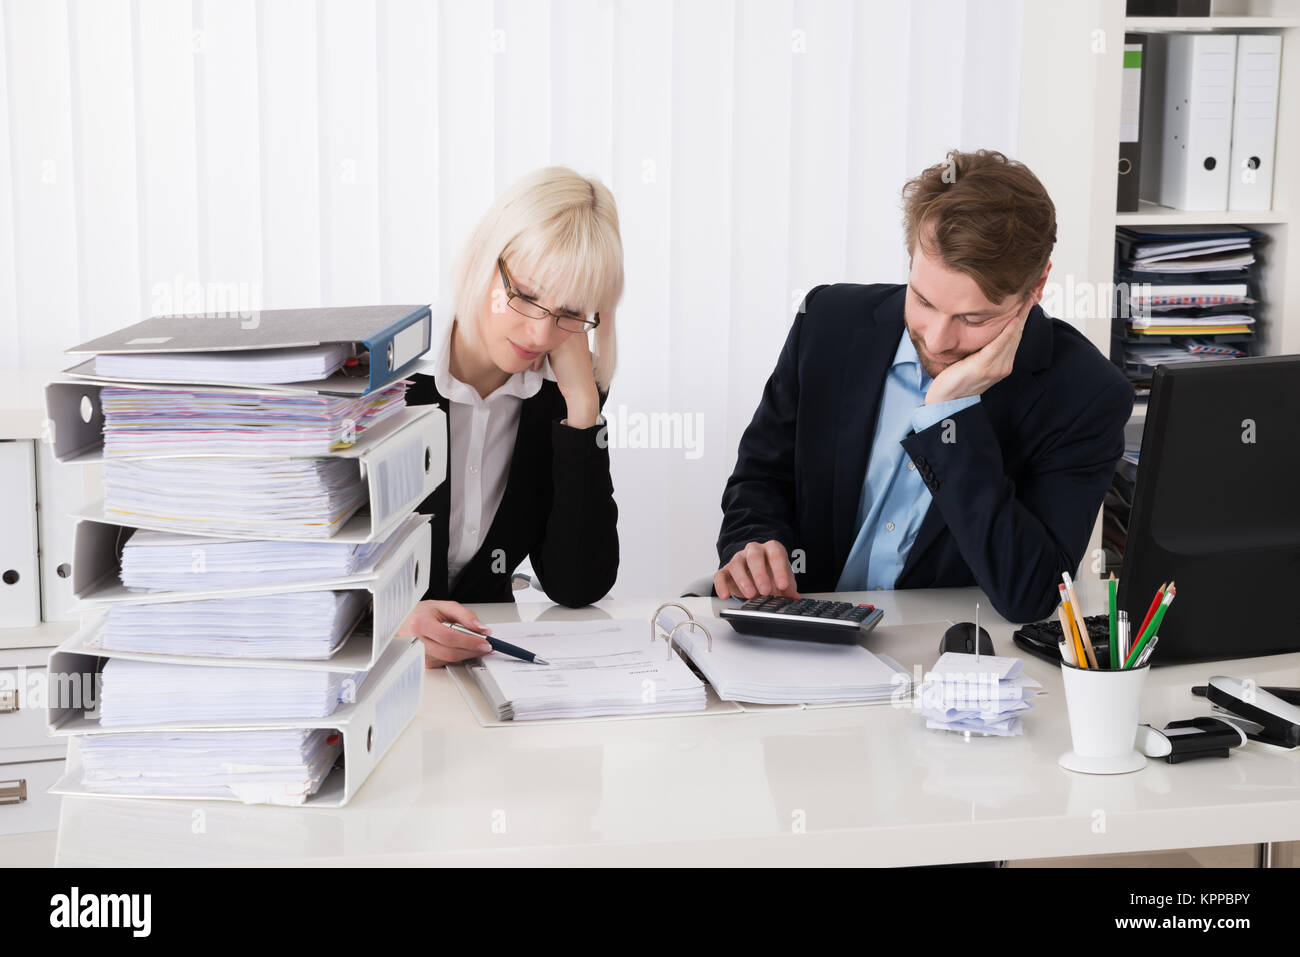 Businesspeople Calculating Invoices - Stock Image